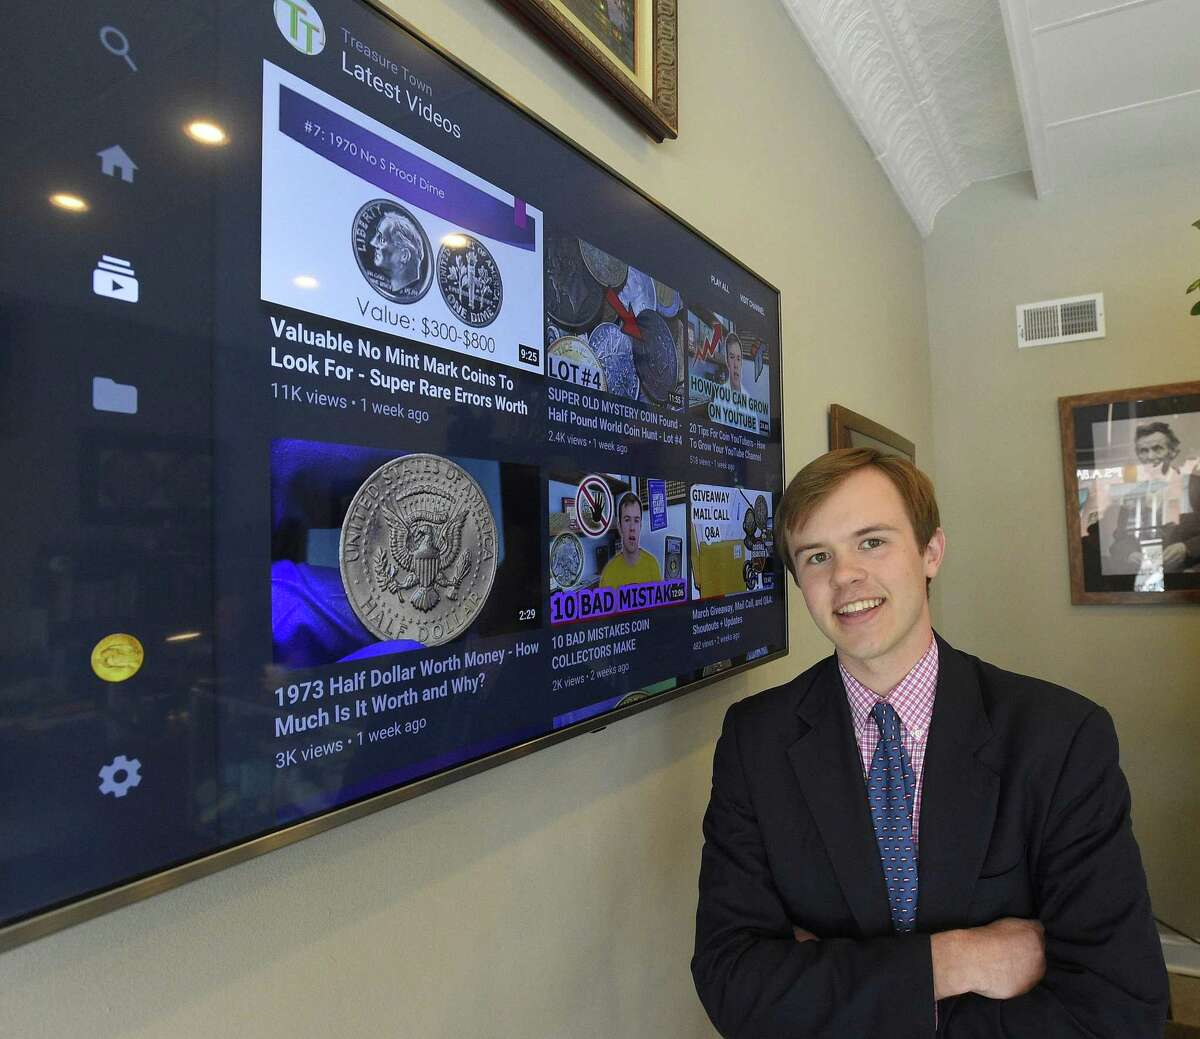 Christian Hartcher, an avid coin collector who has a YouTube following of 18,000 subscribers, is photograph Thursday, April 11, 2019 at his place of employment, Happy Coins in Greenwich, Connecticut. Hartcher is holding a rare 1936 D Cincinnati Commemorative Silver Half Dollar coin, that was recently sold to a private collector.